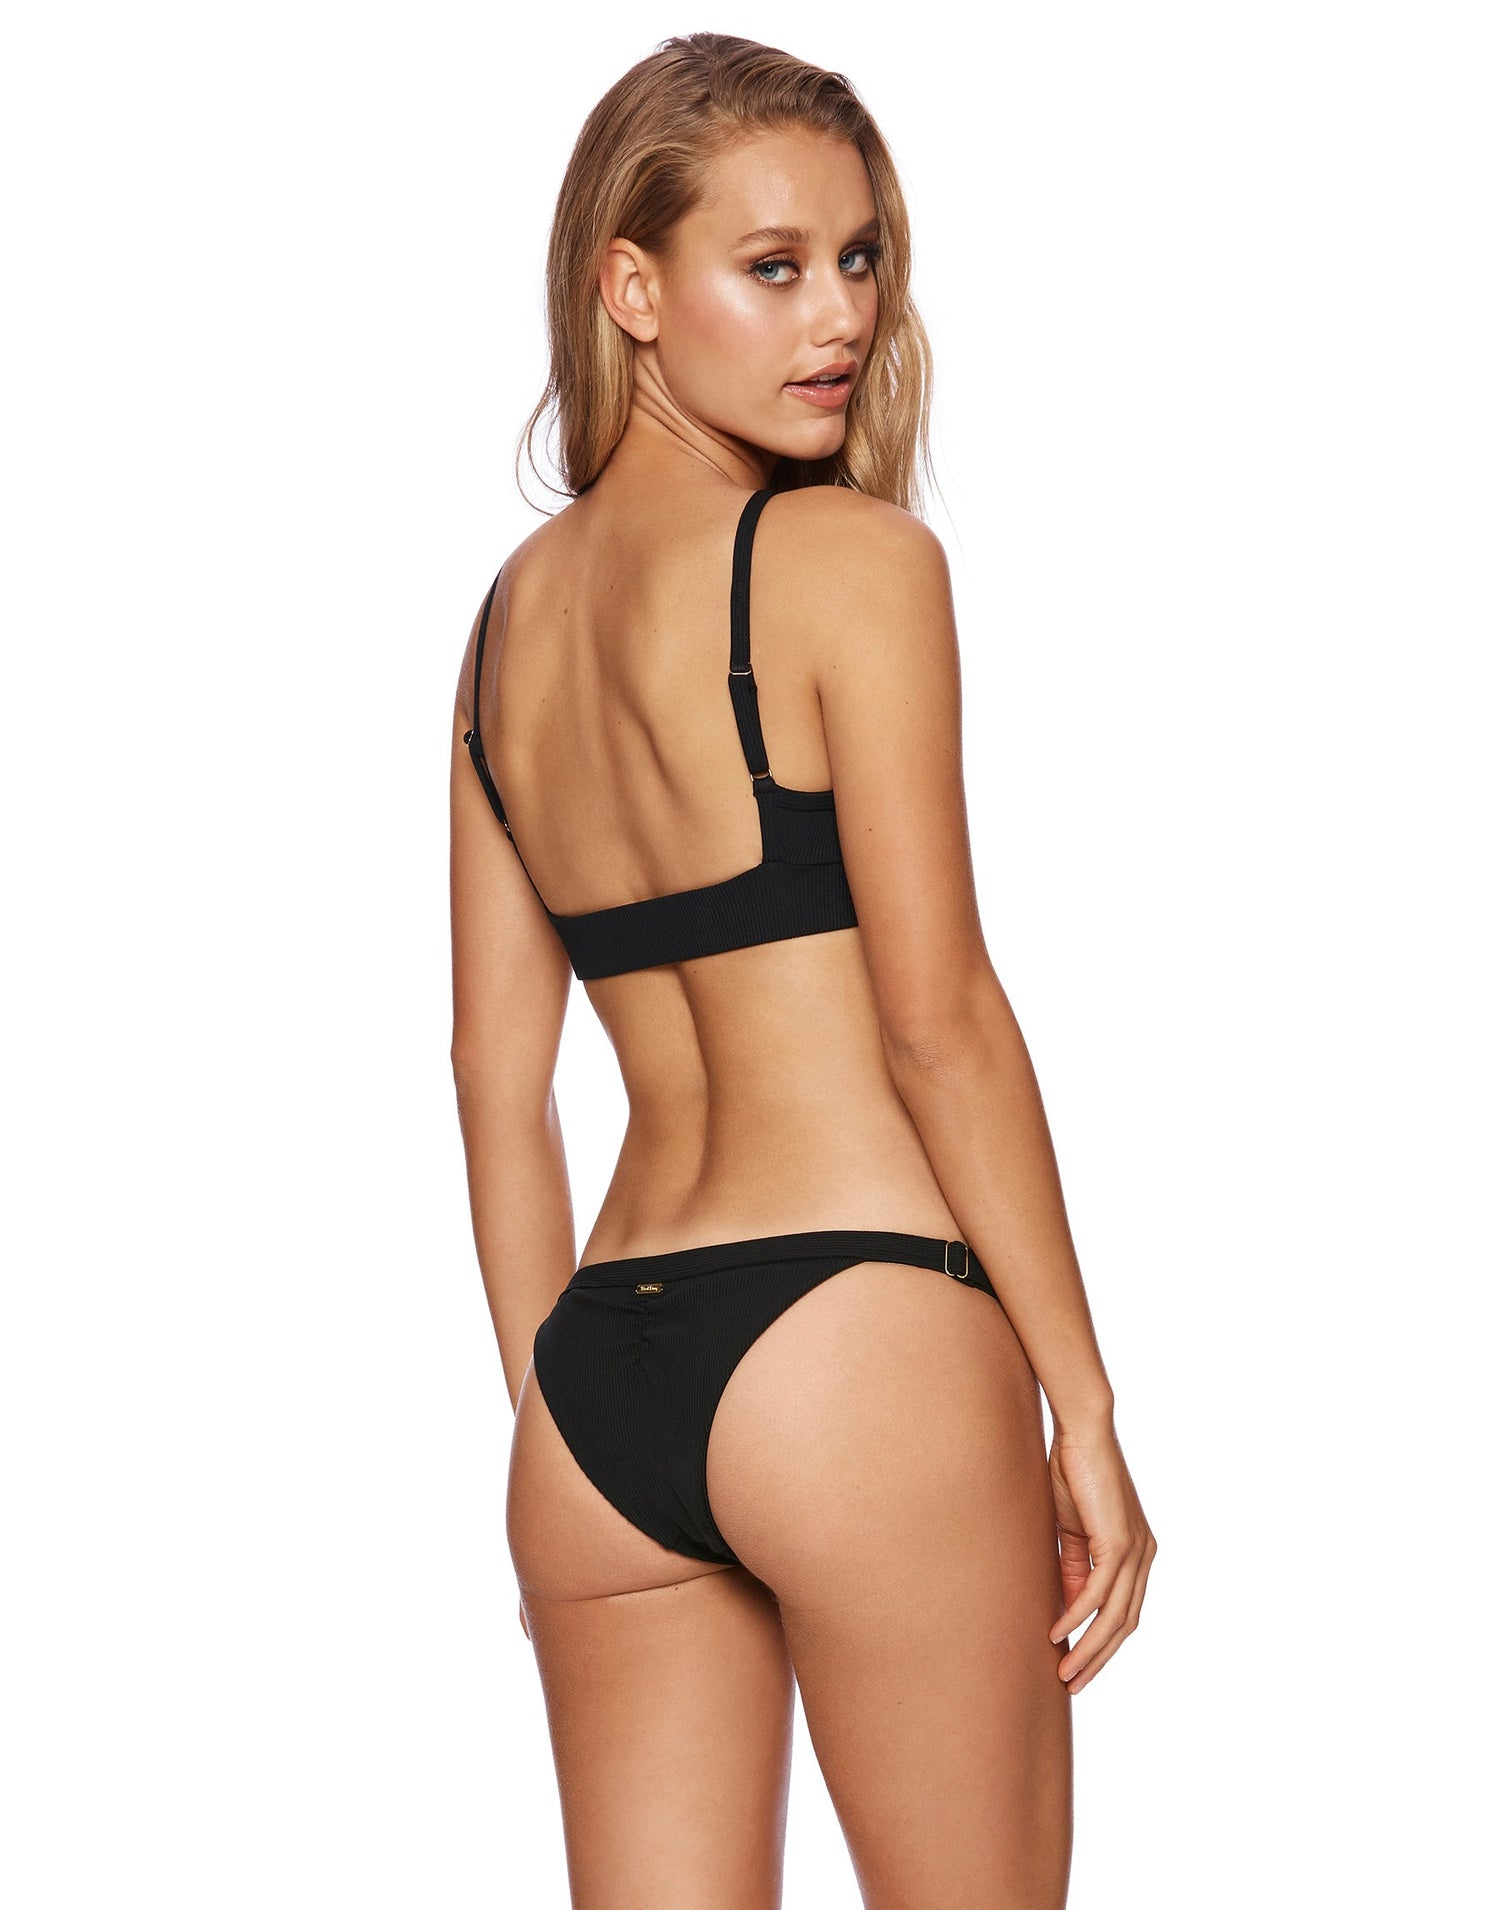 Rib Tide Adjustable Skimpy Bottom